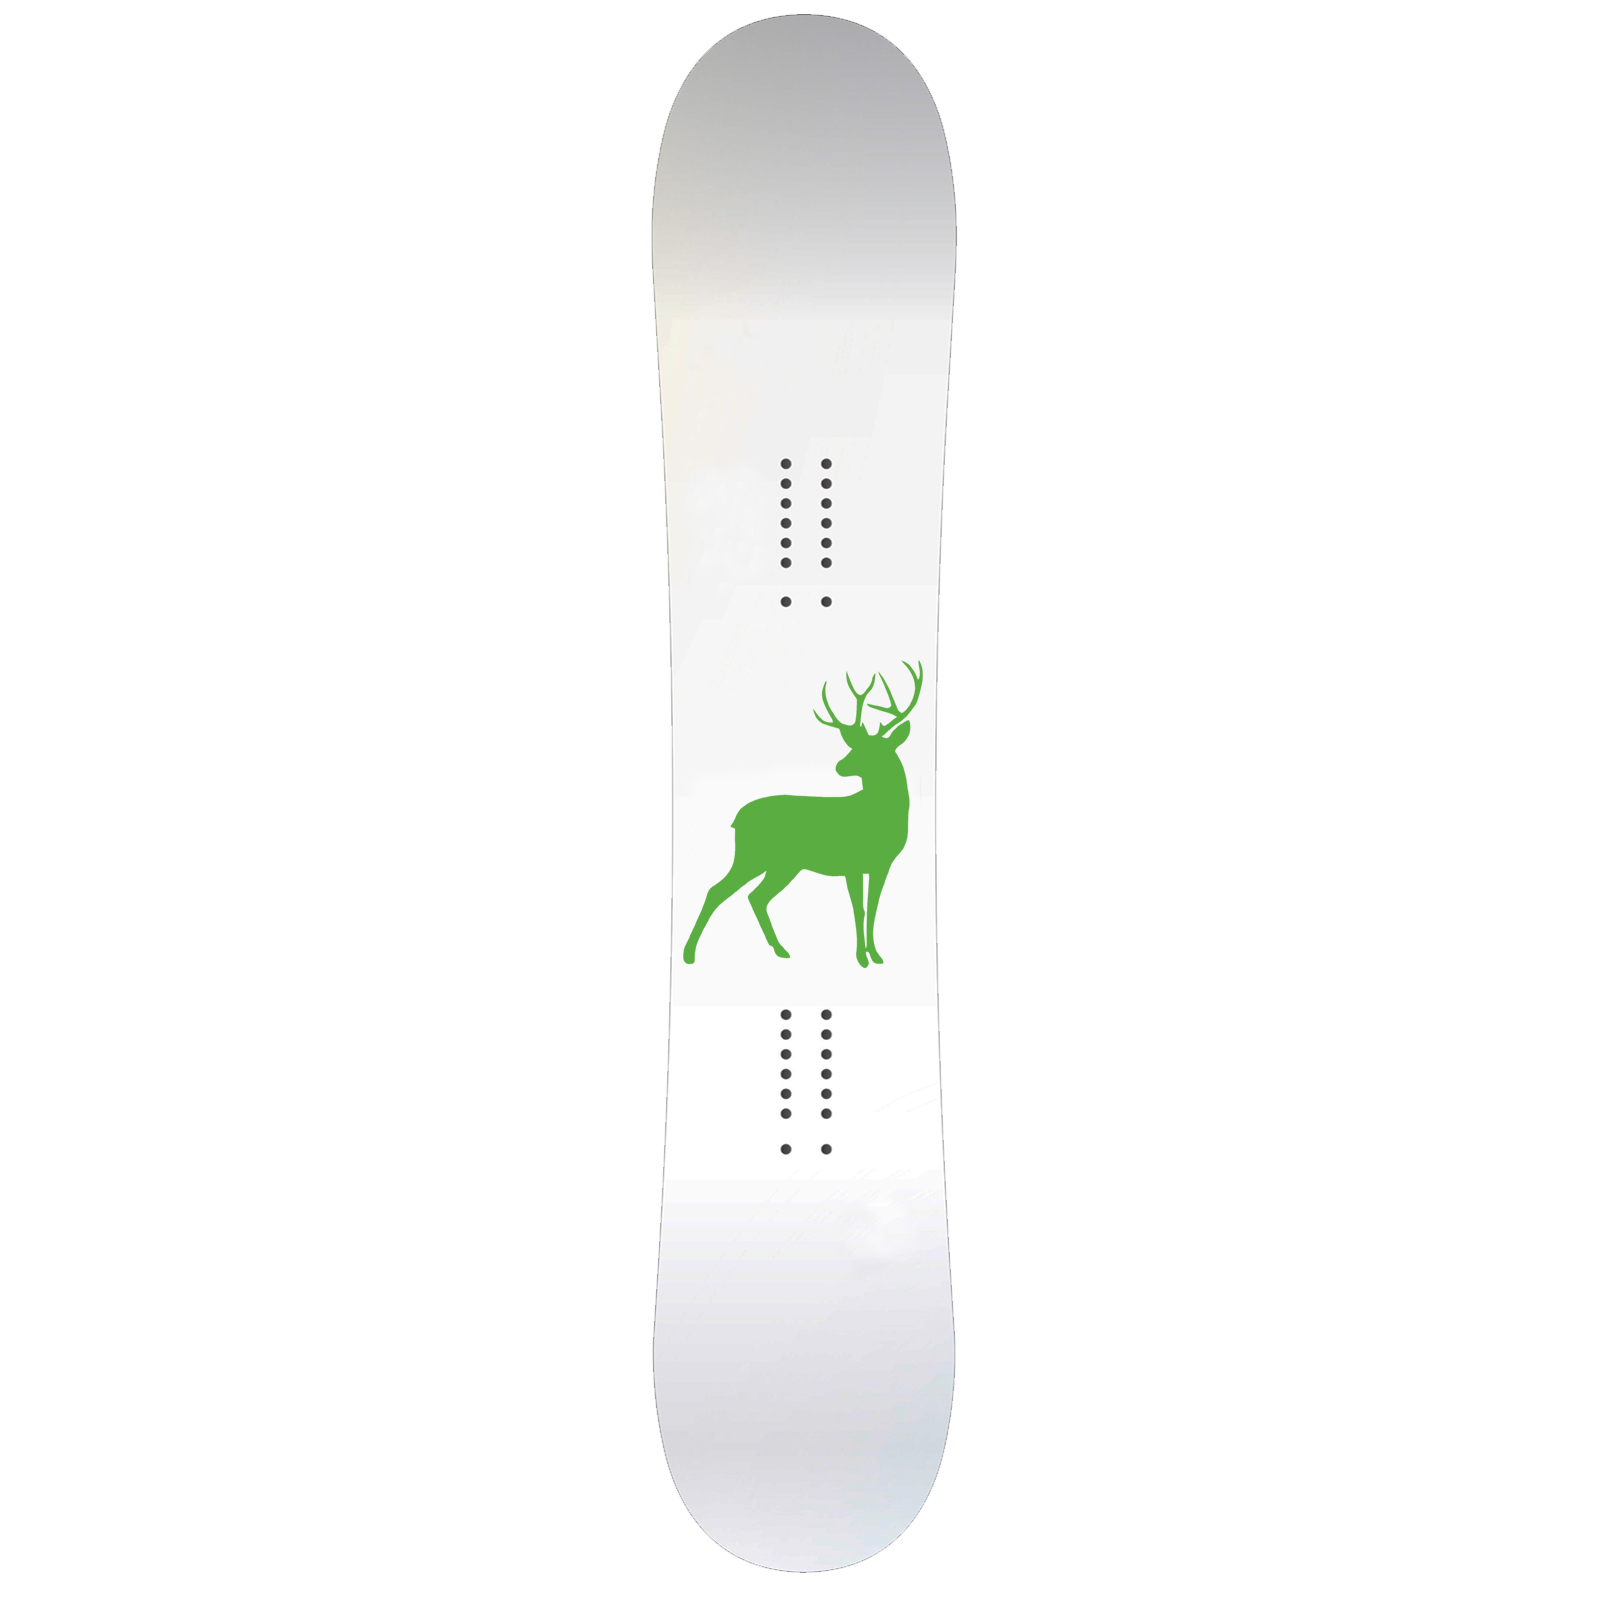 Deer Body Silhouette Snowboard Sticker All Weather Vinyl Decal